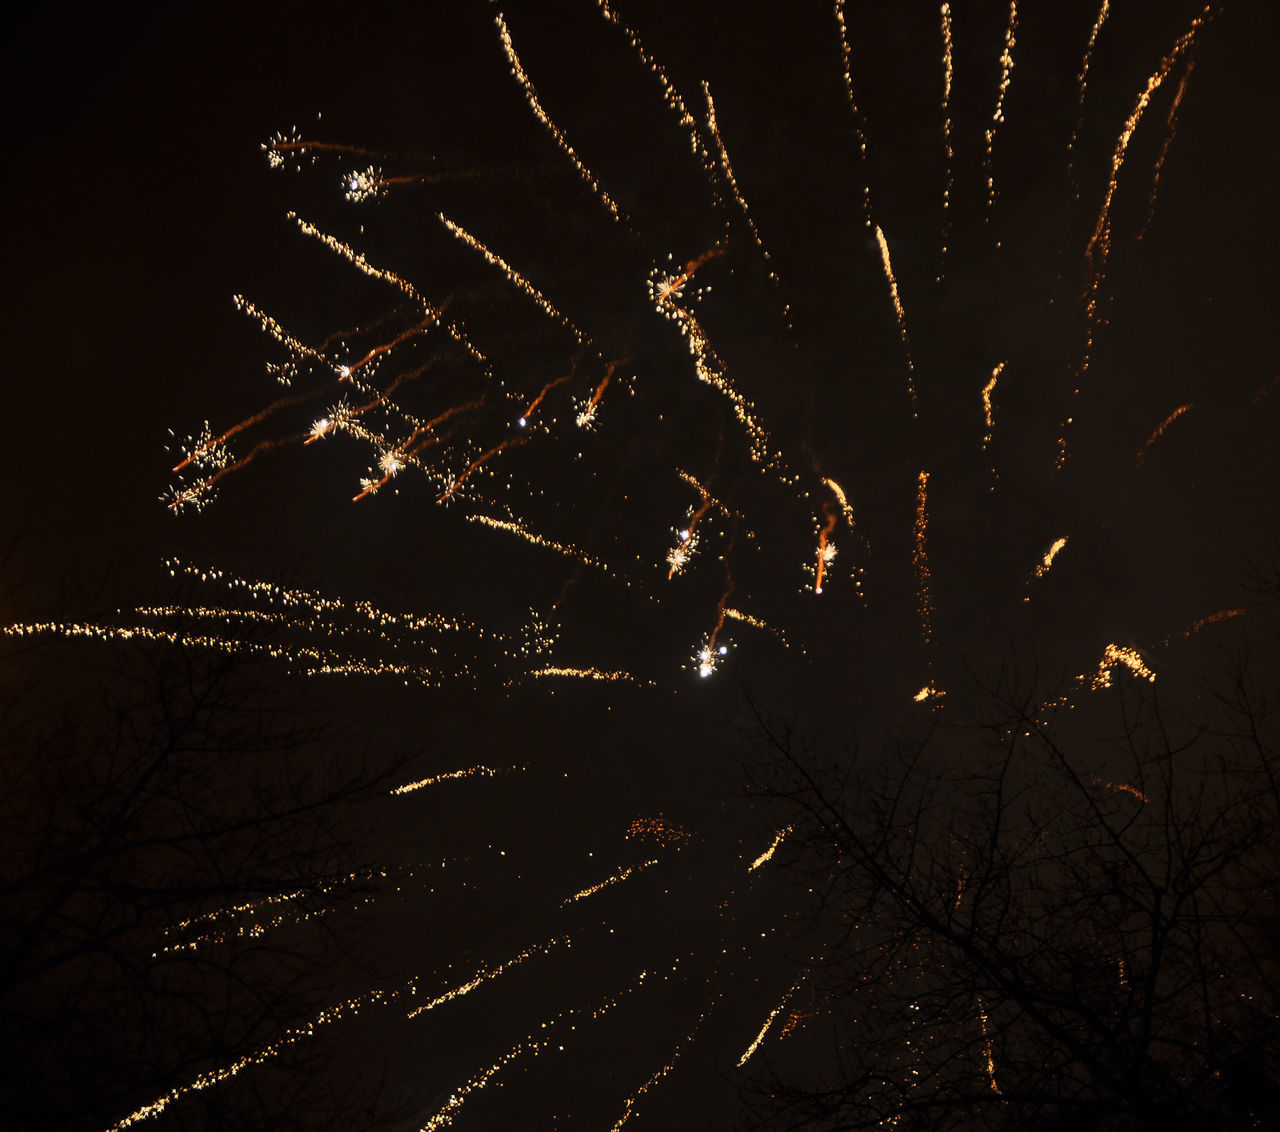 night, firework display, celebration, firework - man made object, long exposure, exploding, glowing, illuminated, event, outdoors, low angle view, no people, motion, arts culture and entertainment, sky, firework